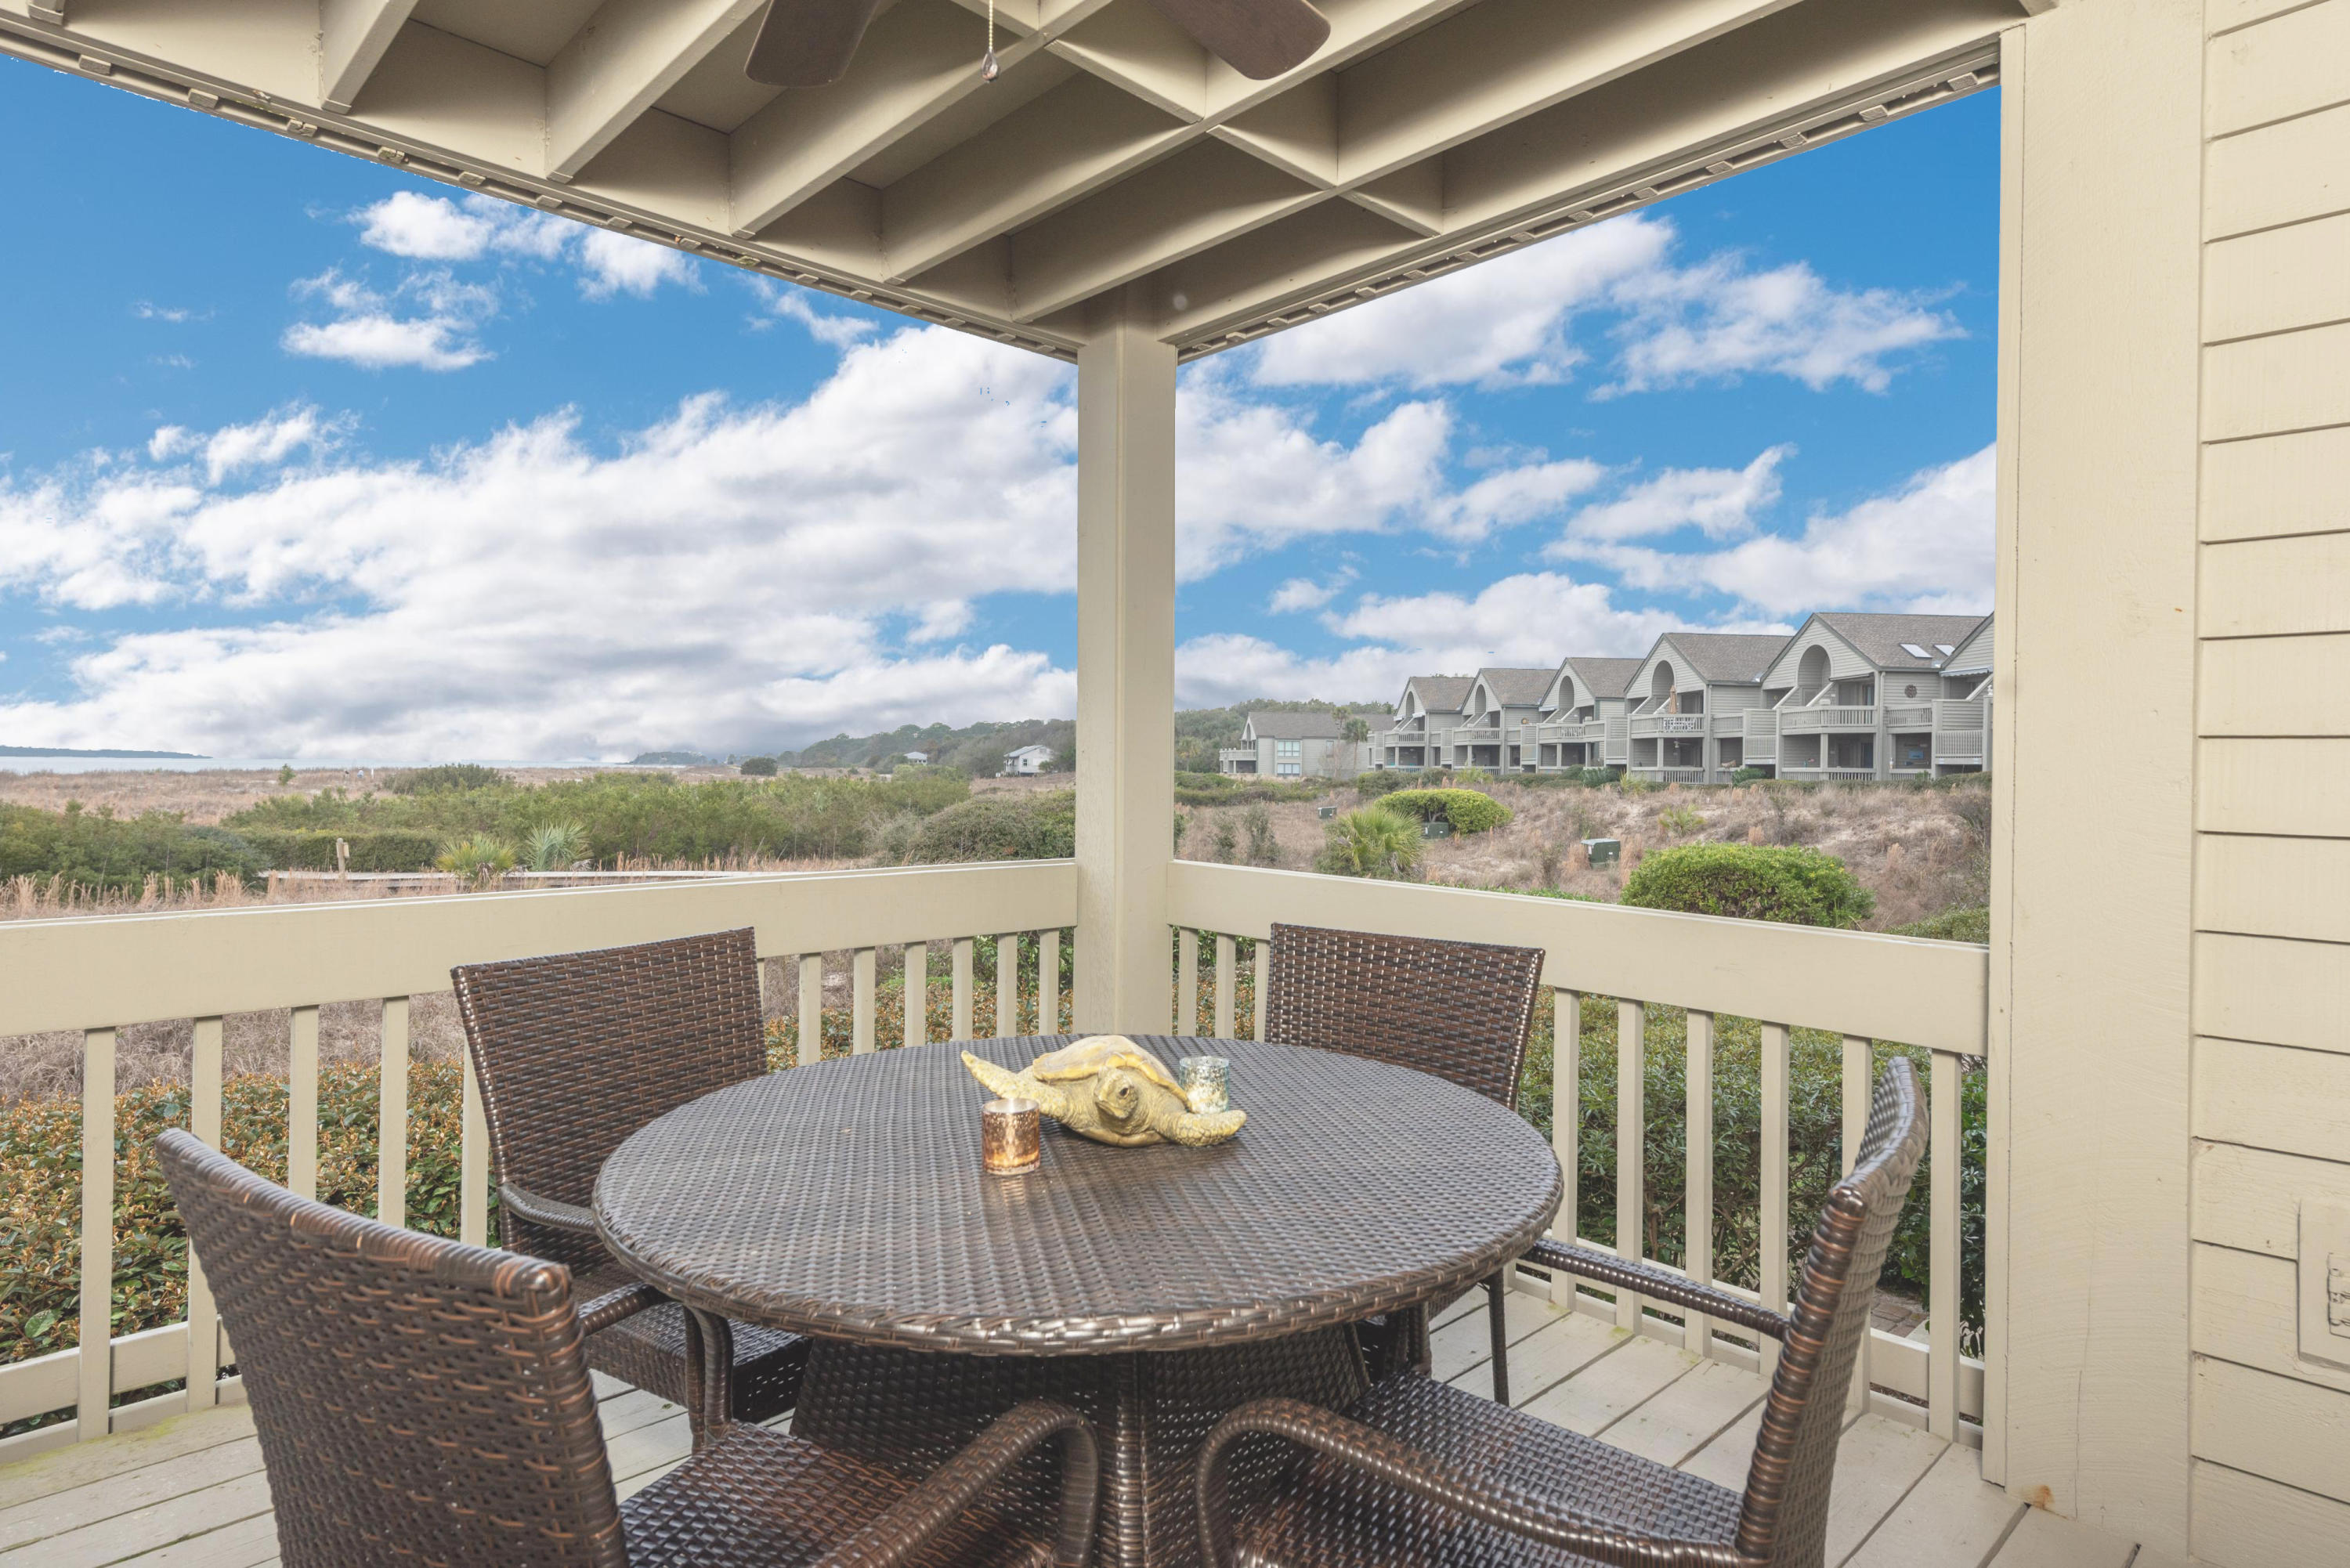 Seabrook Island Homes For Sale - 1339 Pelican Watch Villas, Seabrook Island, SC - 0